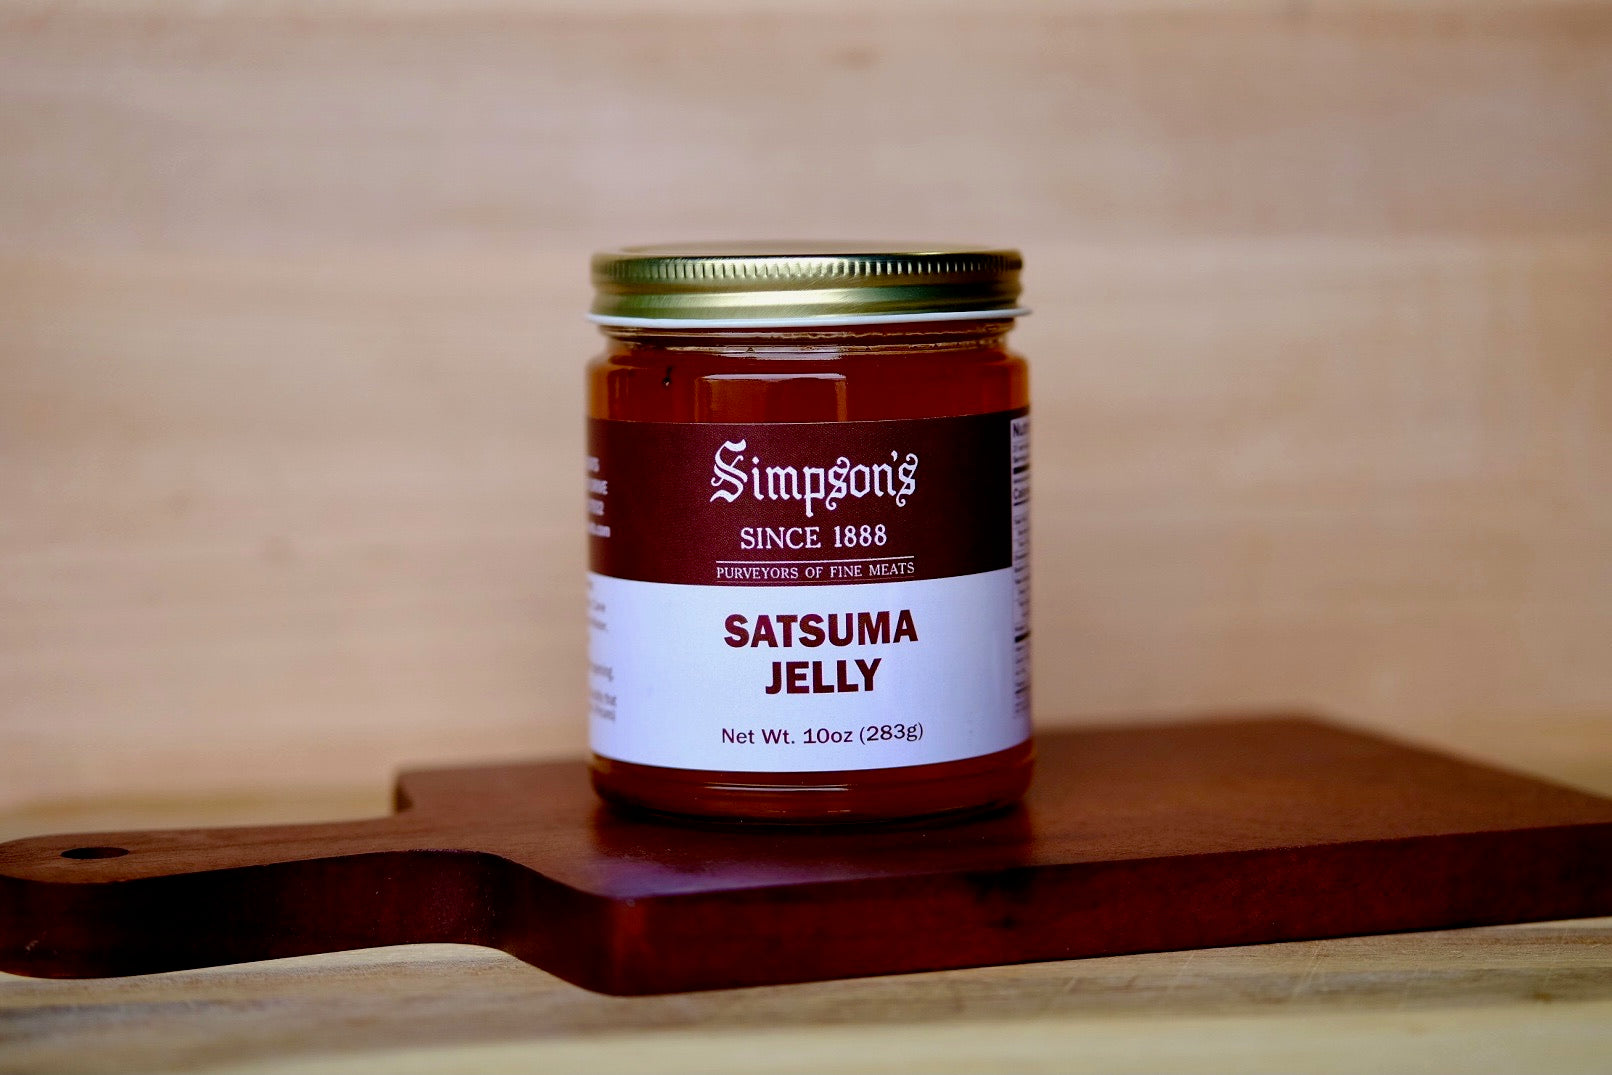 Satsuma Jelly